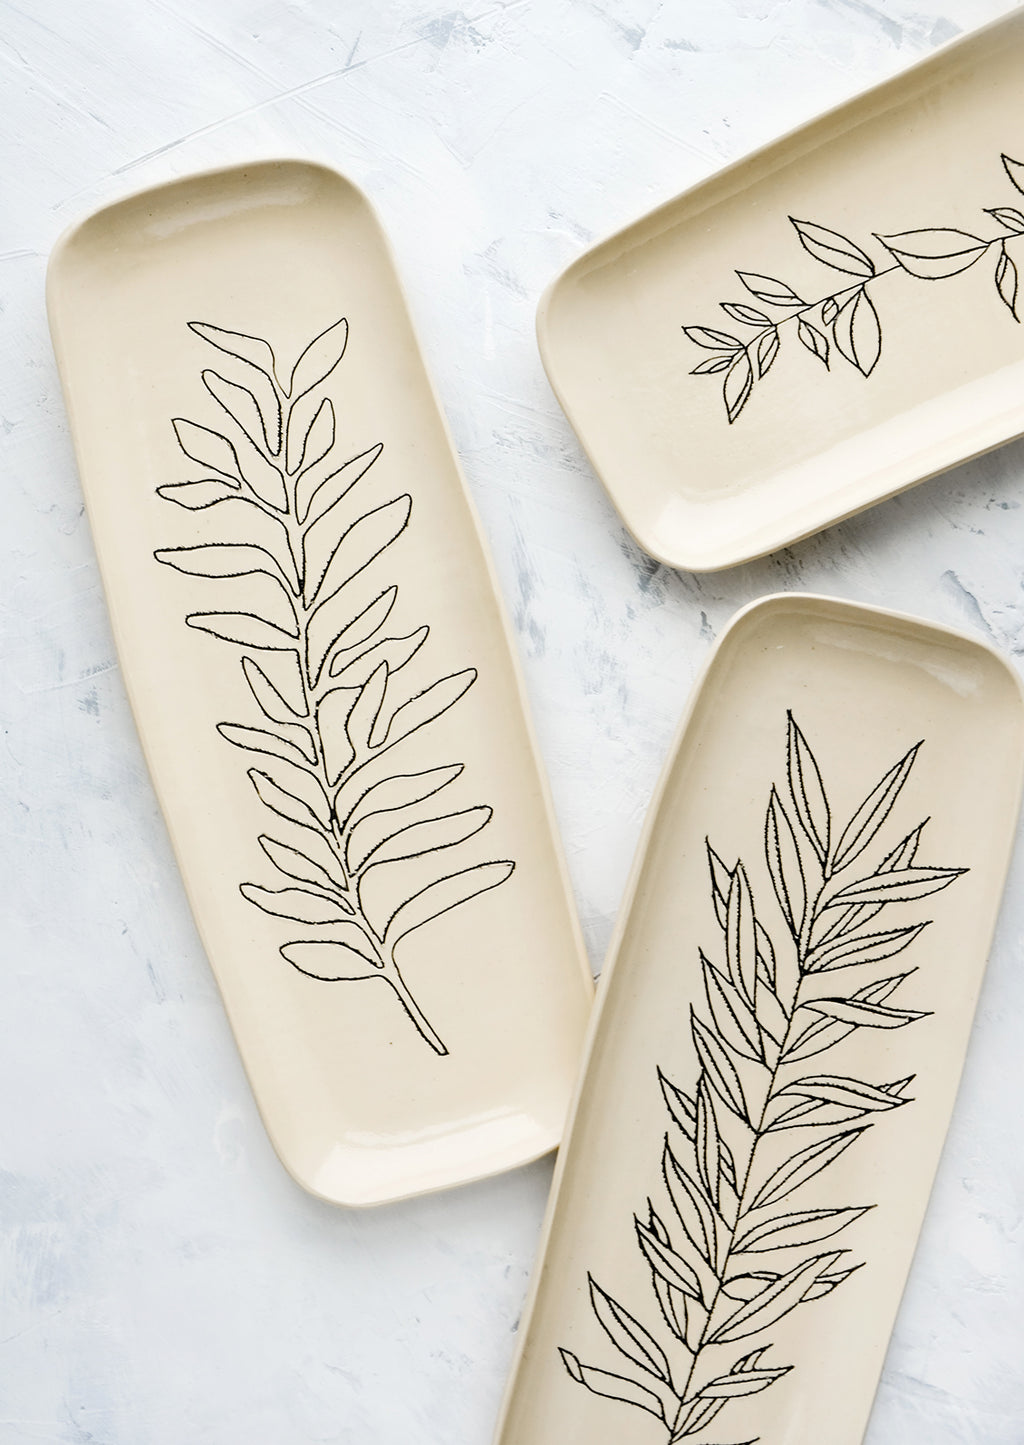 3: Tall and slender ceramic platters in natural bisque color with etched black botanical drawings